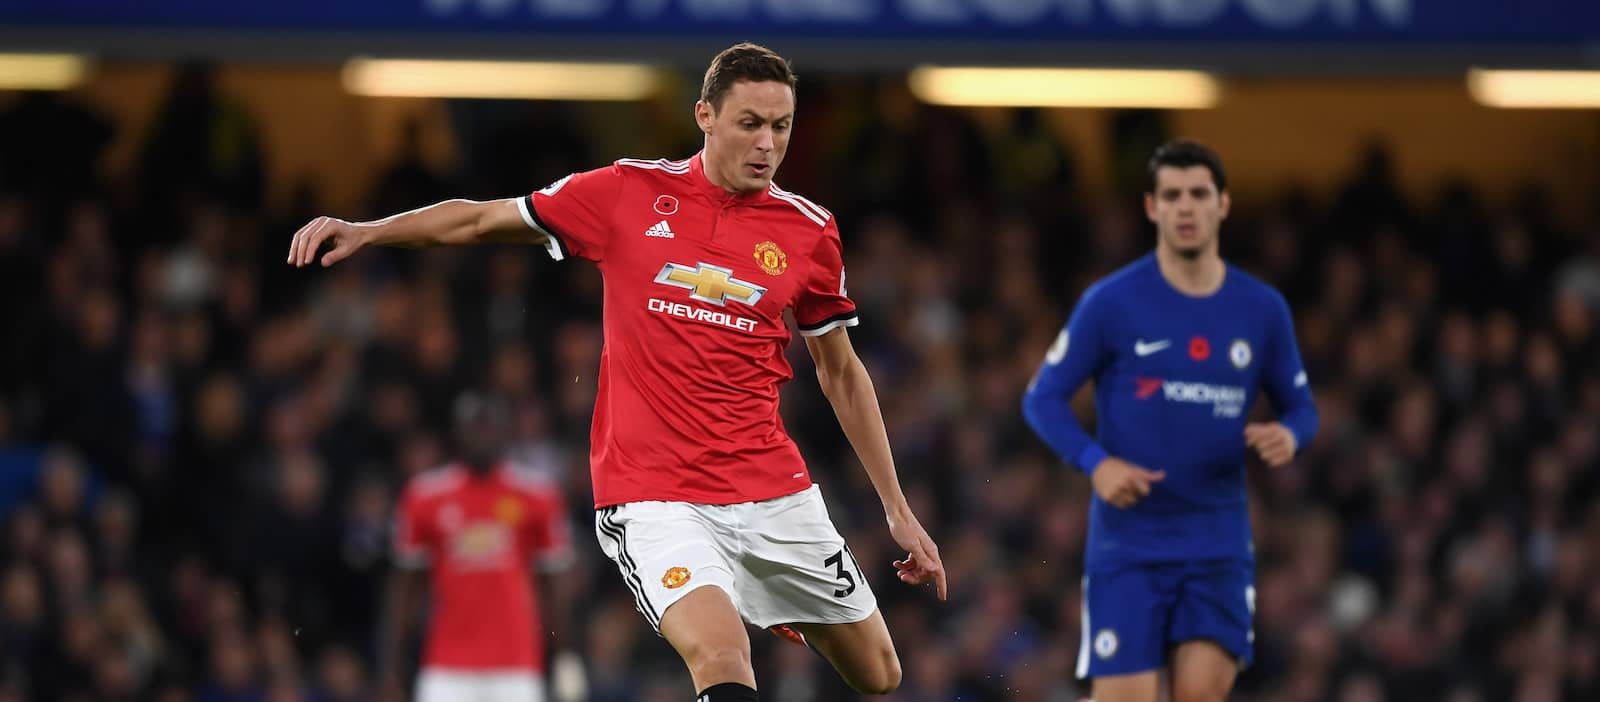 Pat Nevin explains why Chelsea were right to sell Nemanja Matic to Manchester United